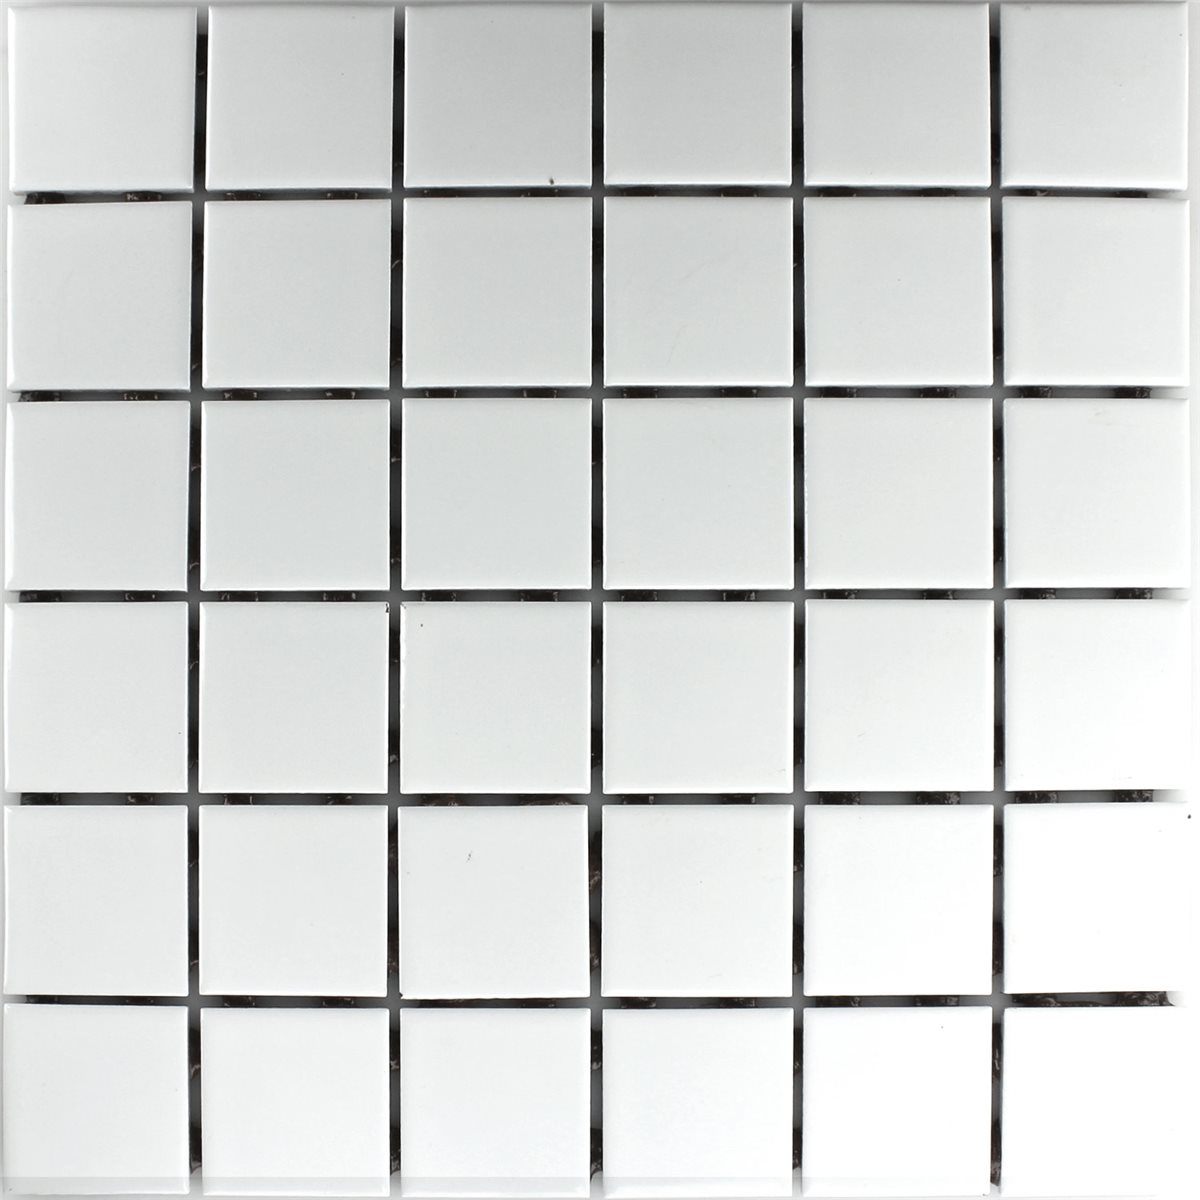 Ceramic mosaic tiles white matt 48x48x6mm ho24163m mosaic tiles ceramic white mat 48x48x6mm dailygadgetfo Choice Image